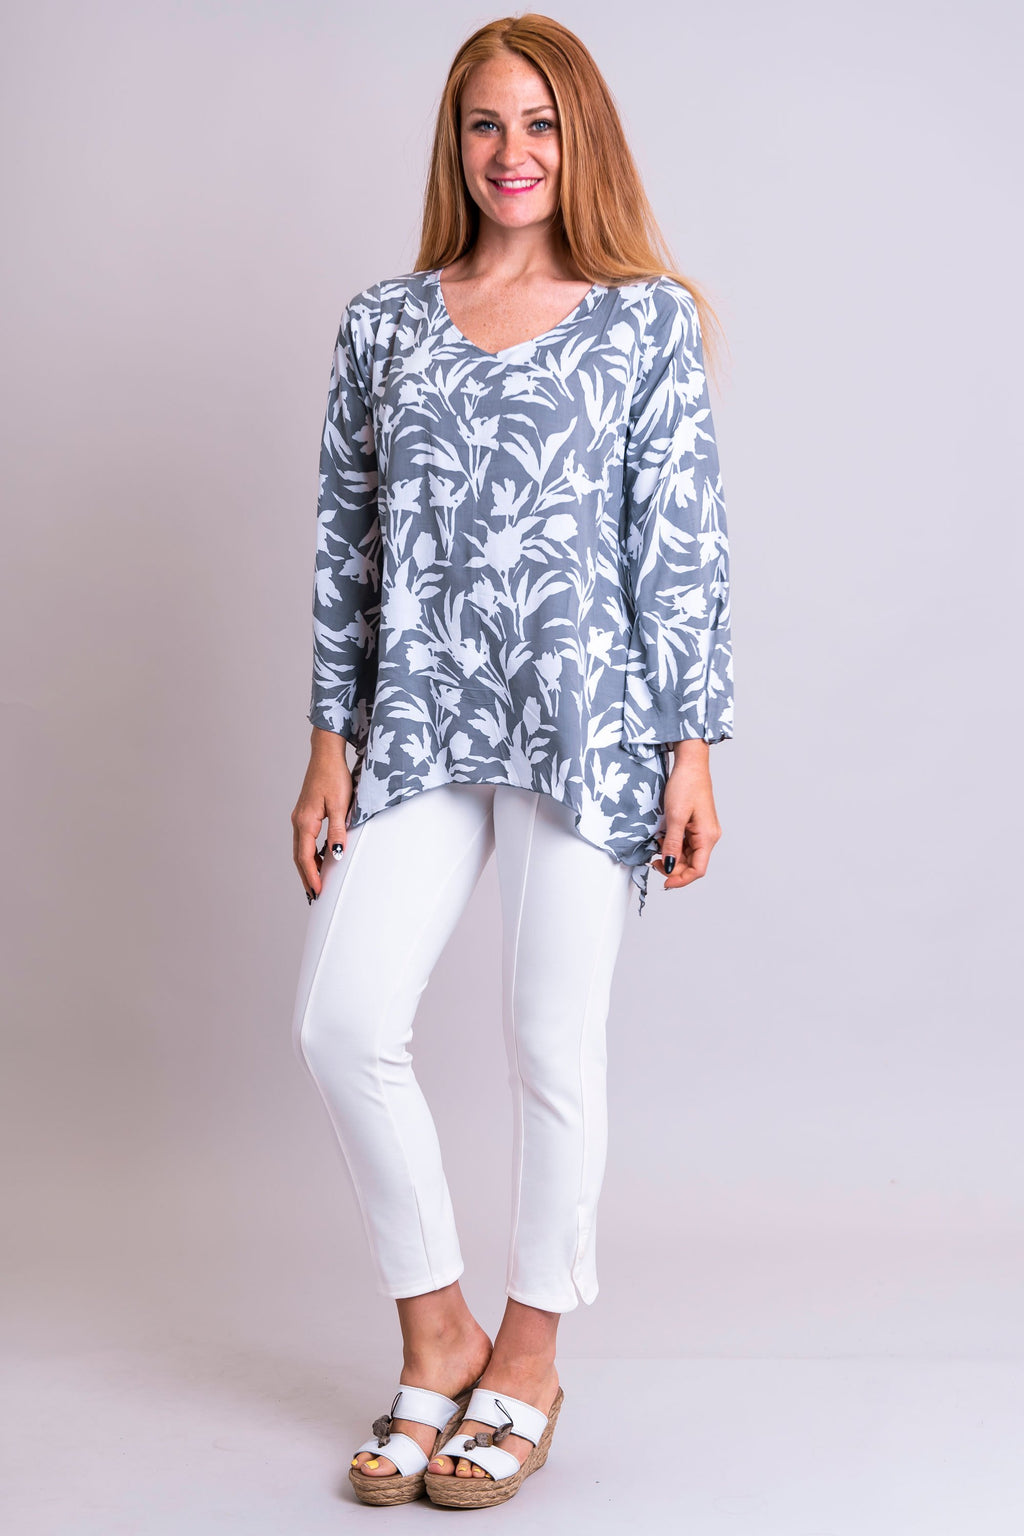 Dorothy Top, Edelweiss, Viscose - Blue Sky Clothing Co